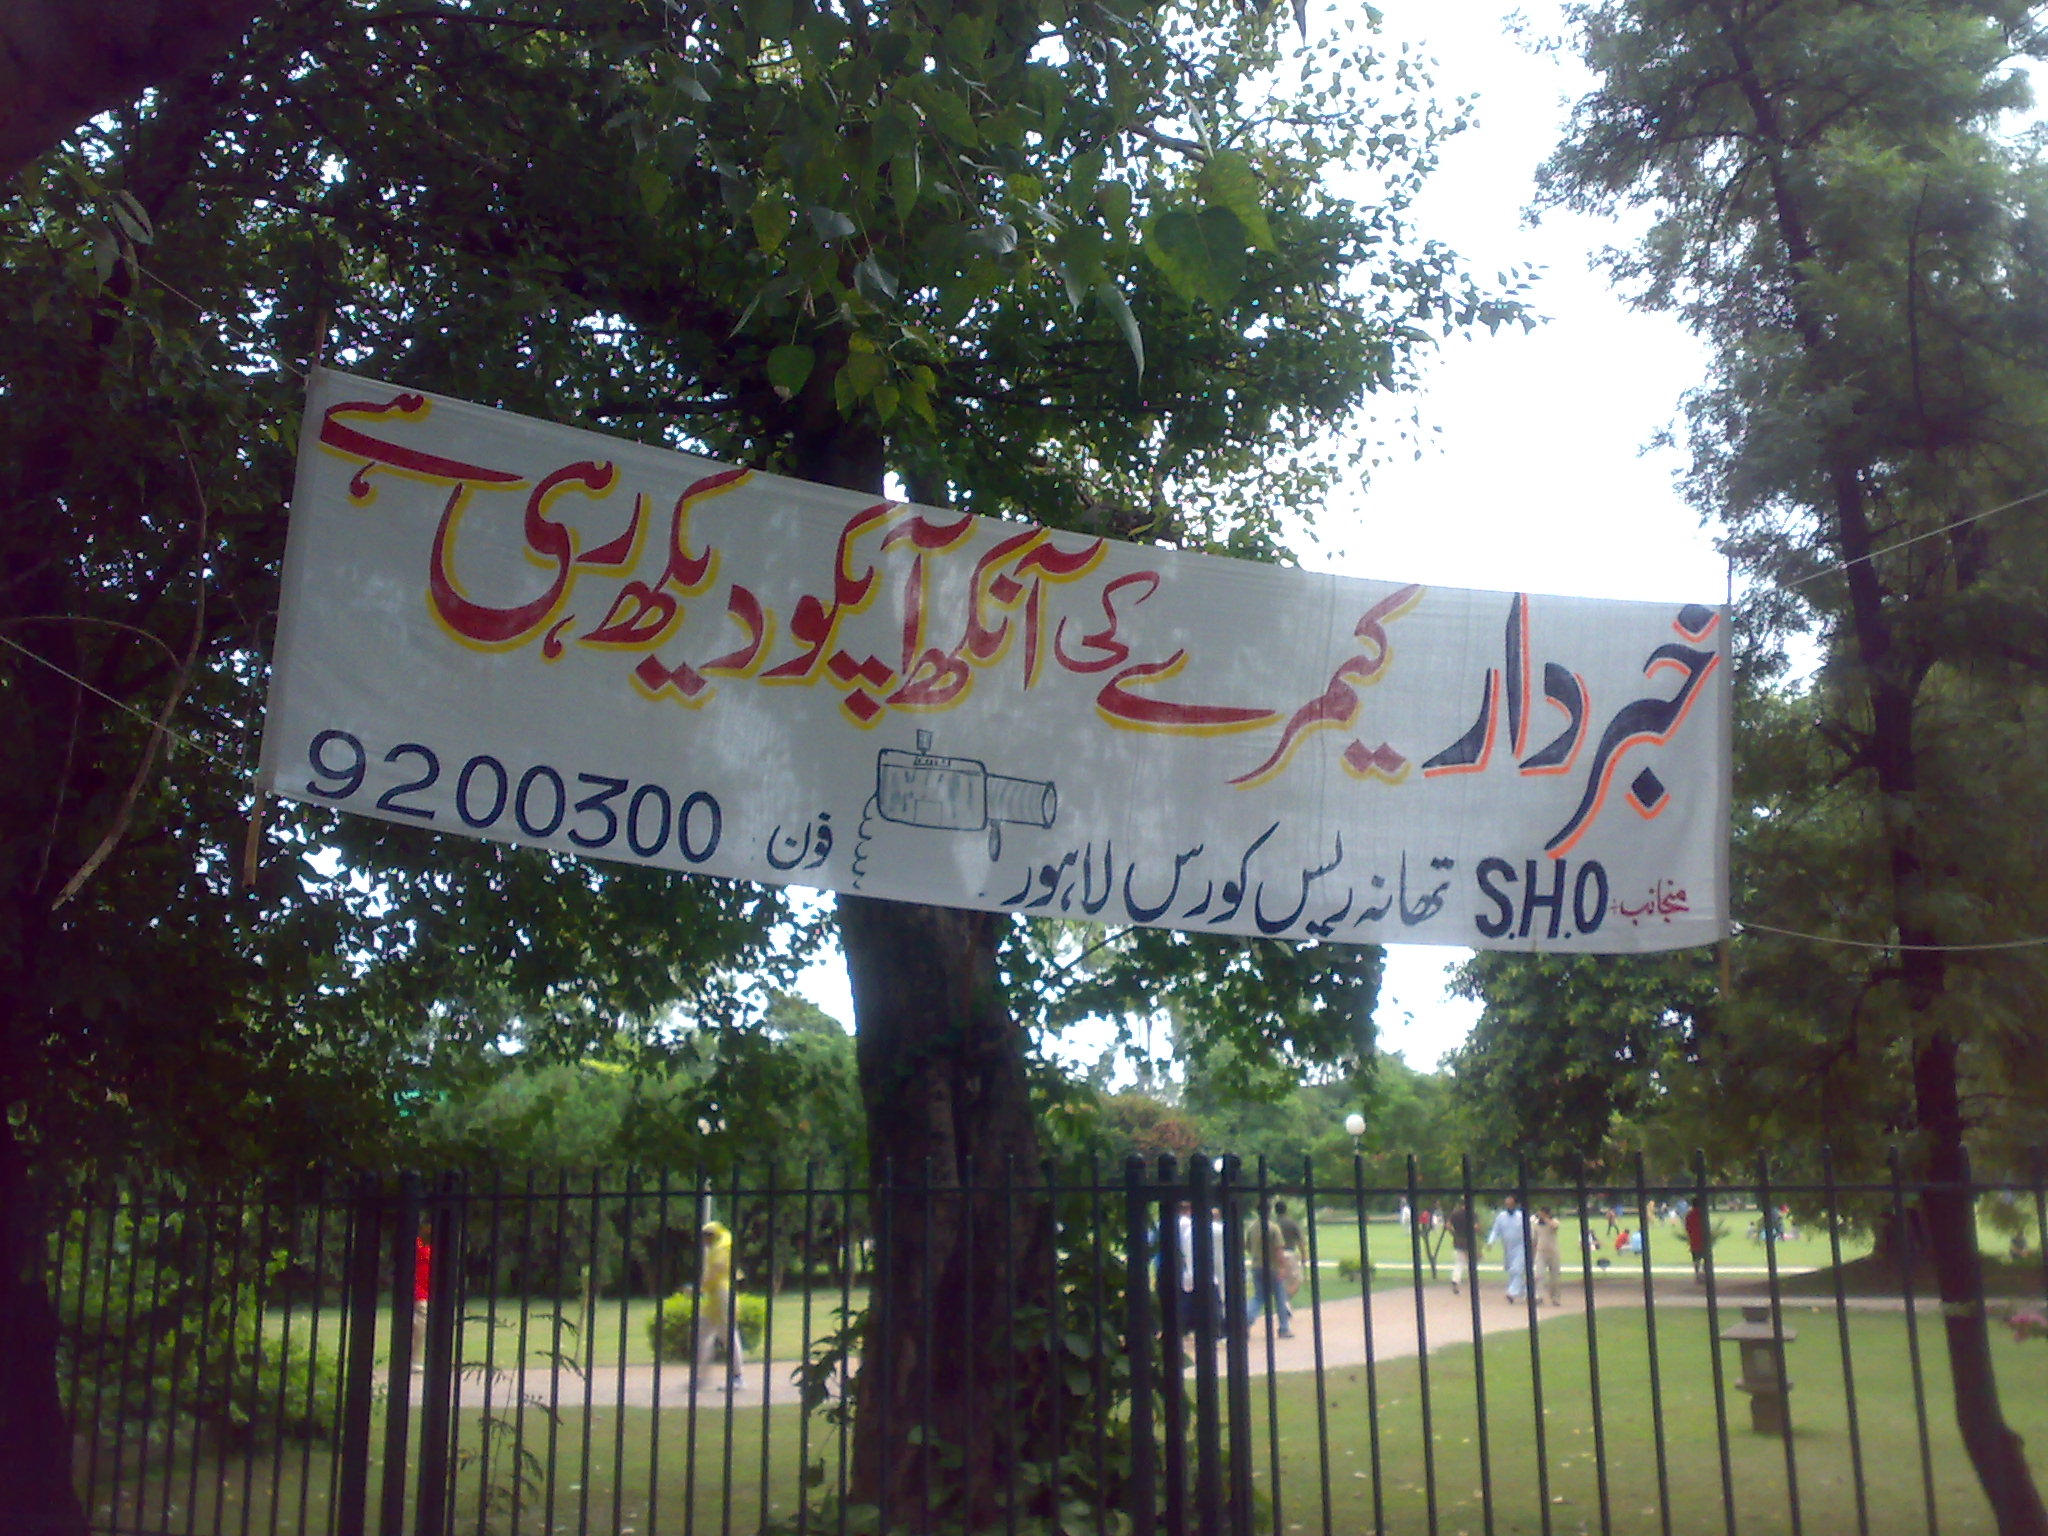 race course park lahore dating Lahore lahore is the capital of punjab and 2nd largest city of pakistan the lahore city lies along ravi historically, lahore remained center of civilization.